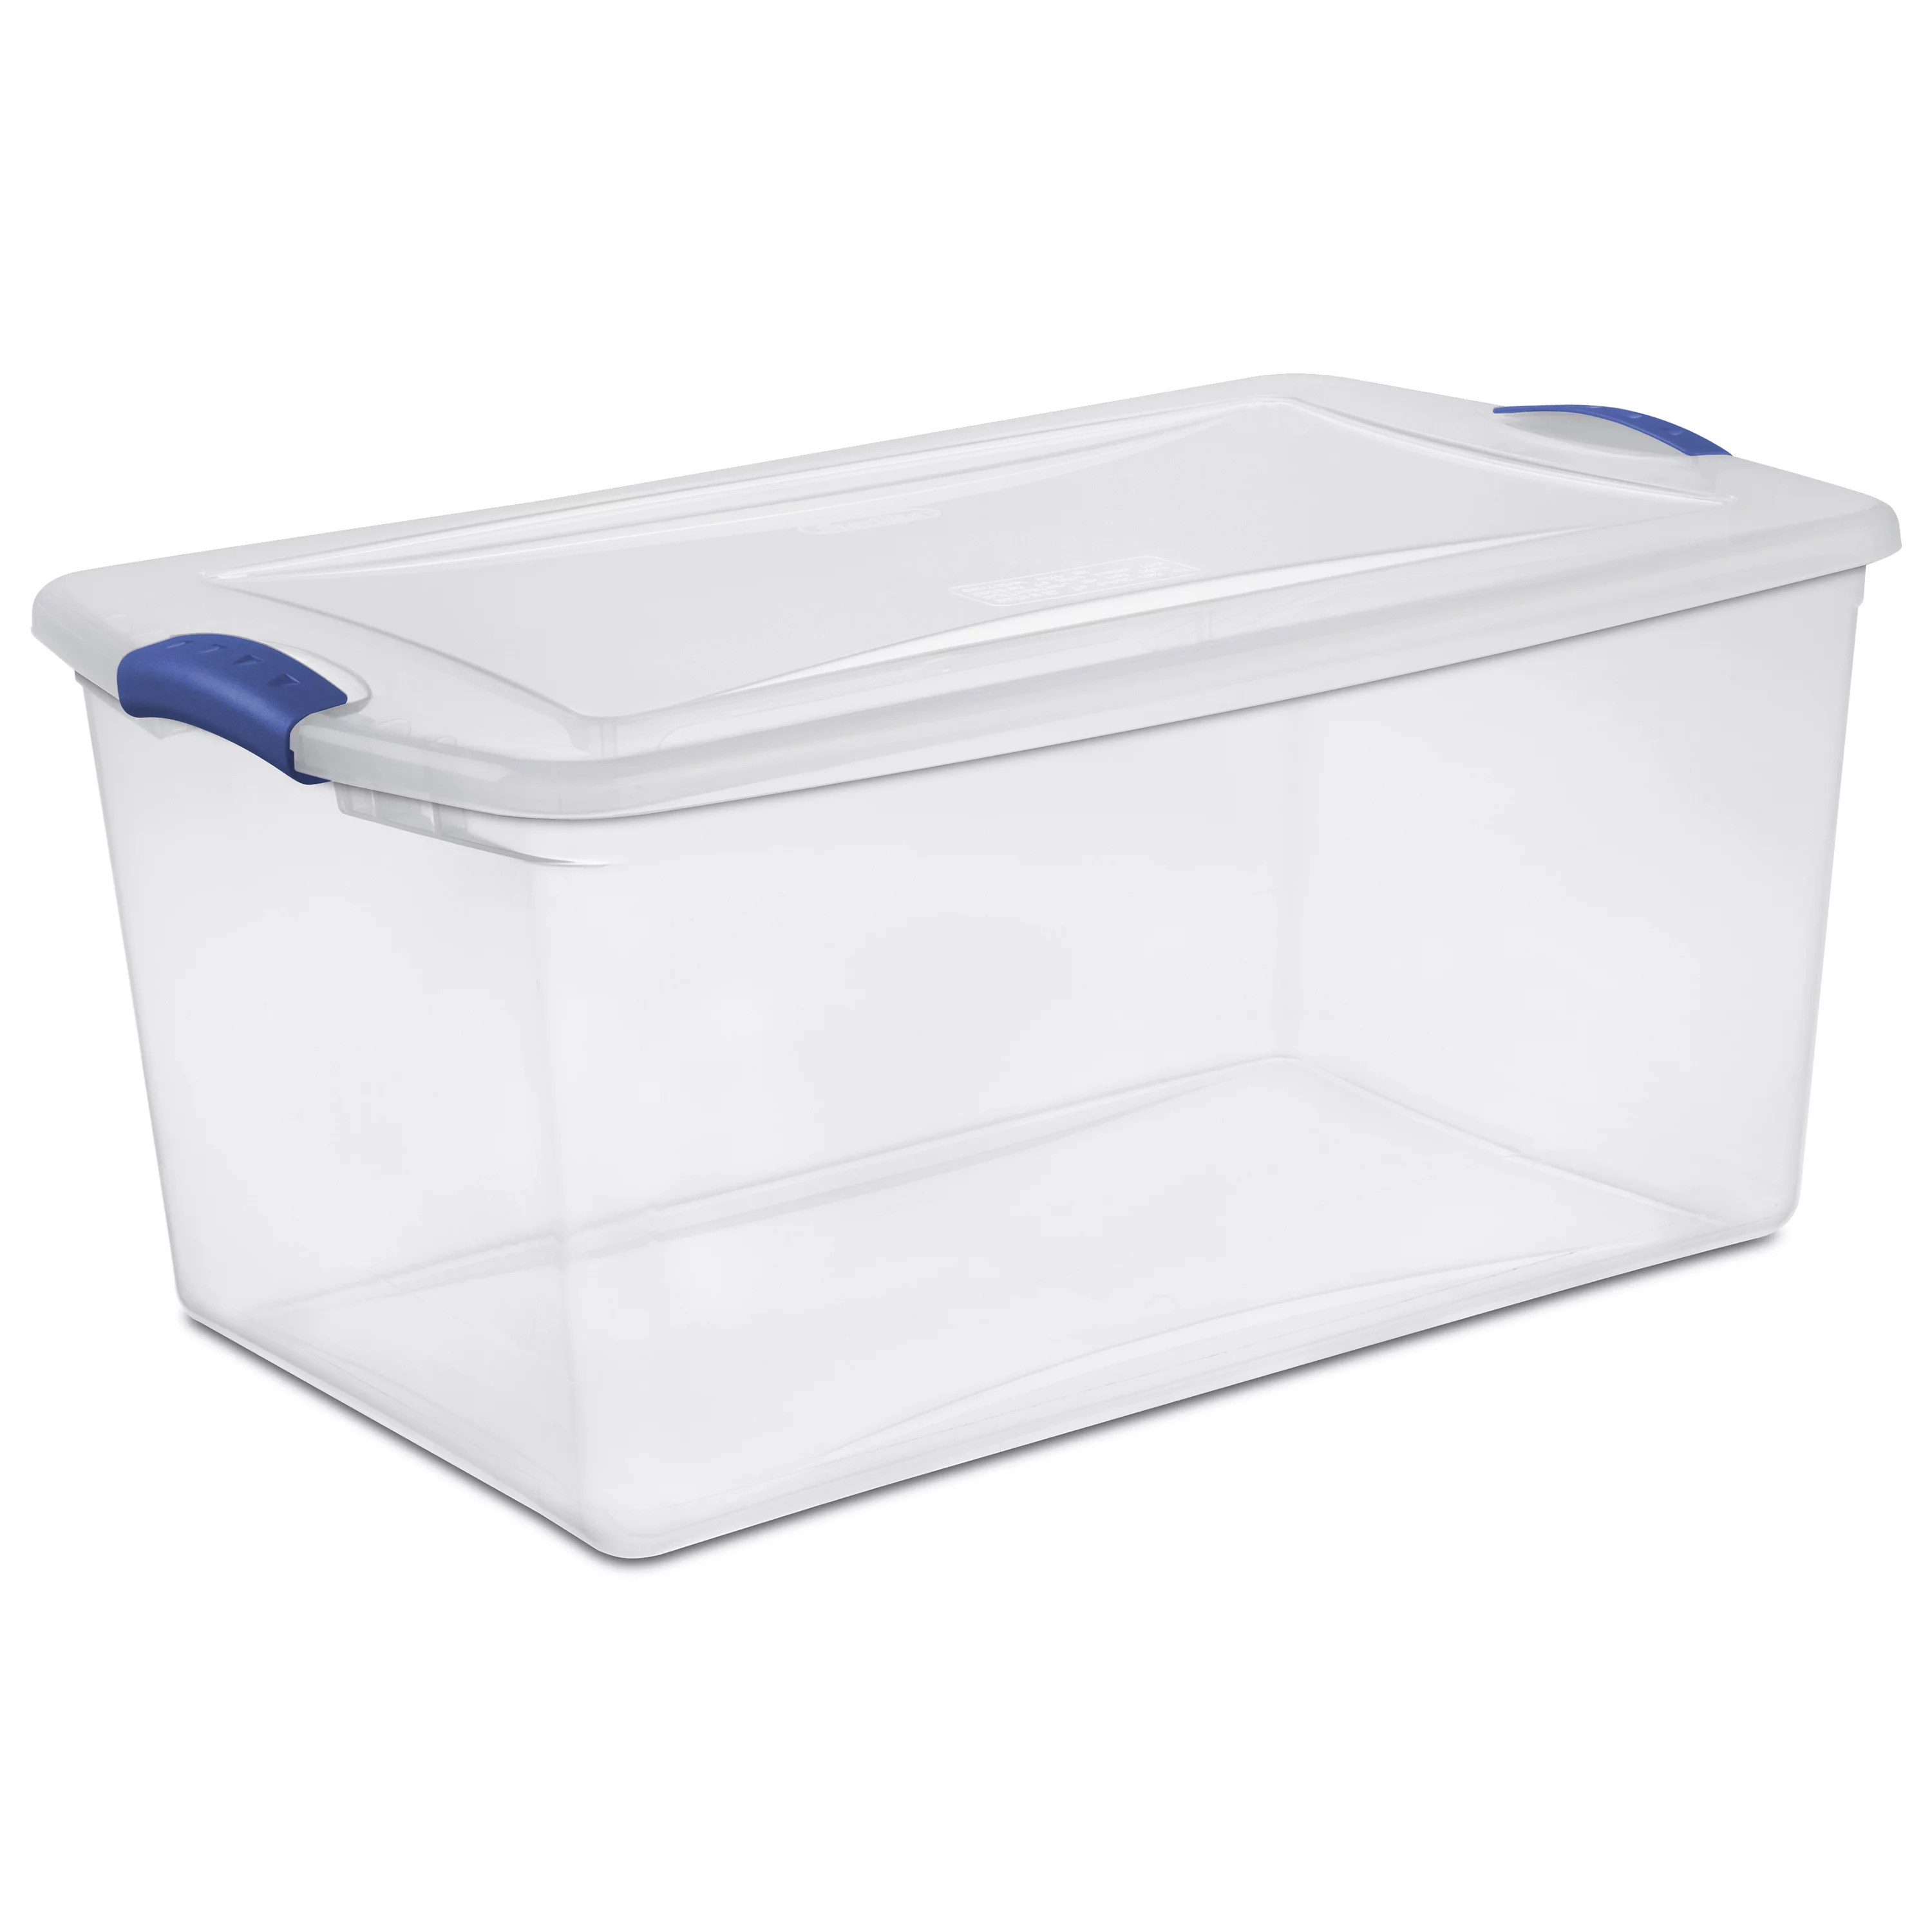 Bunnings Packing Boxes Large Plastic Storage Tote Container Clear Stackable Box 6